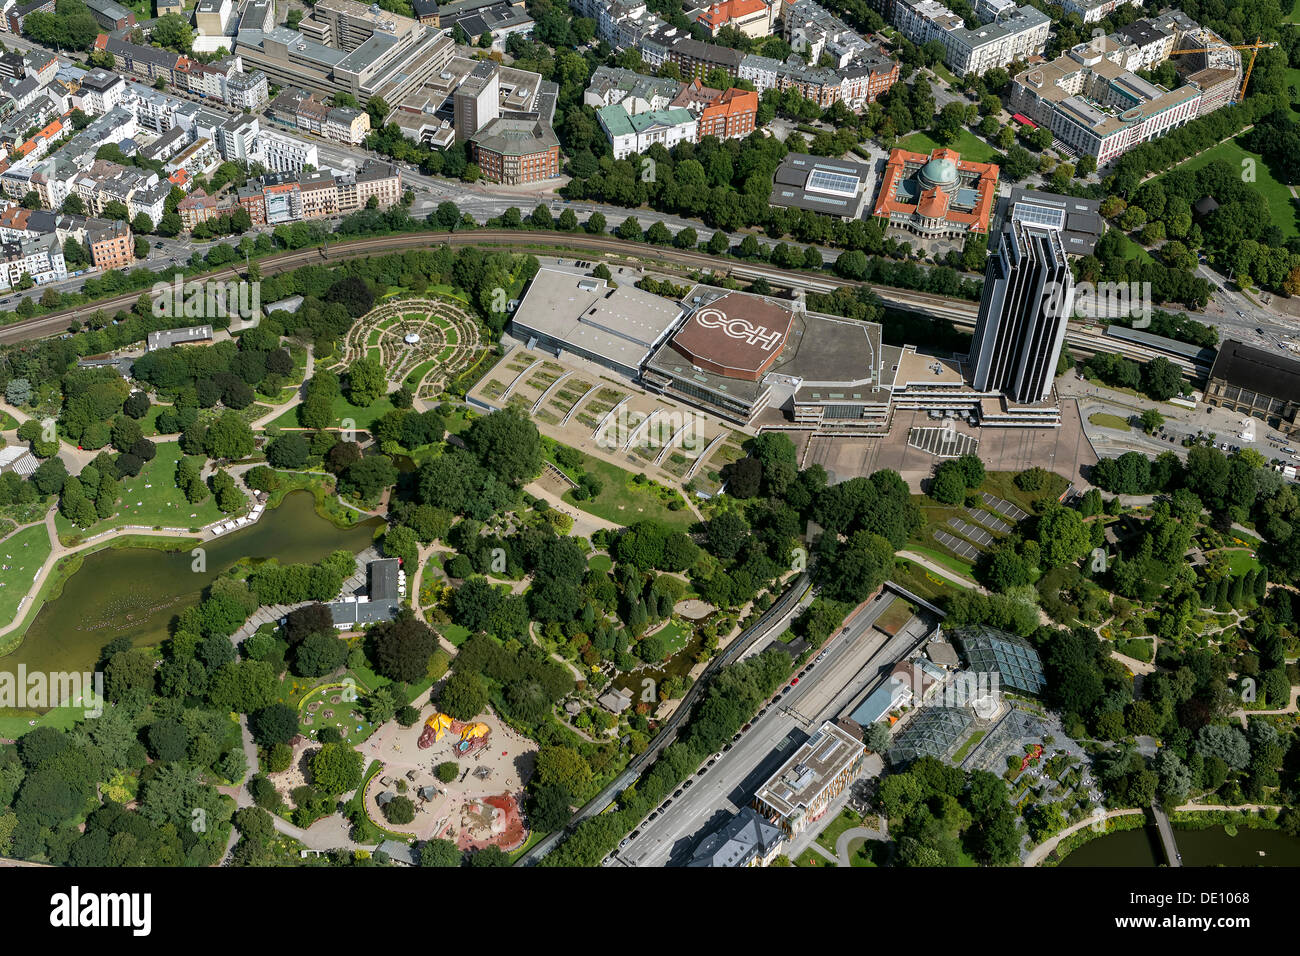 aerial view congress center hamburg or cch planten un blomen park stock photo 60258416 alamy. Black Bedroom Furniture Sets. Home Design Ideas